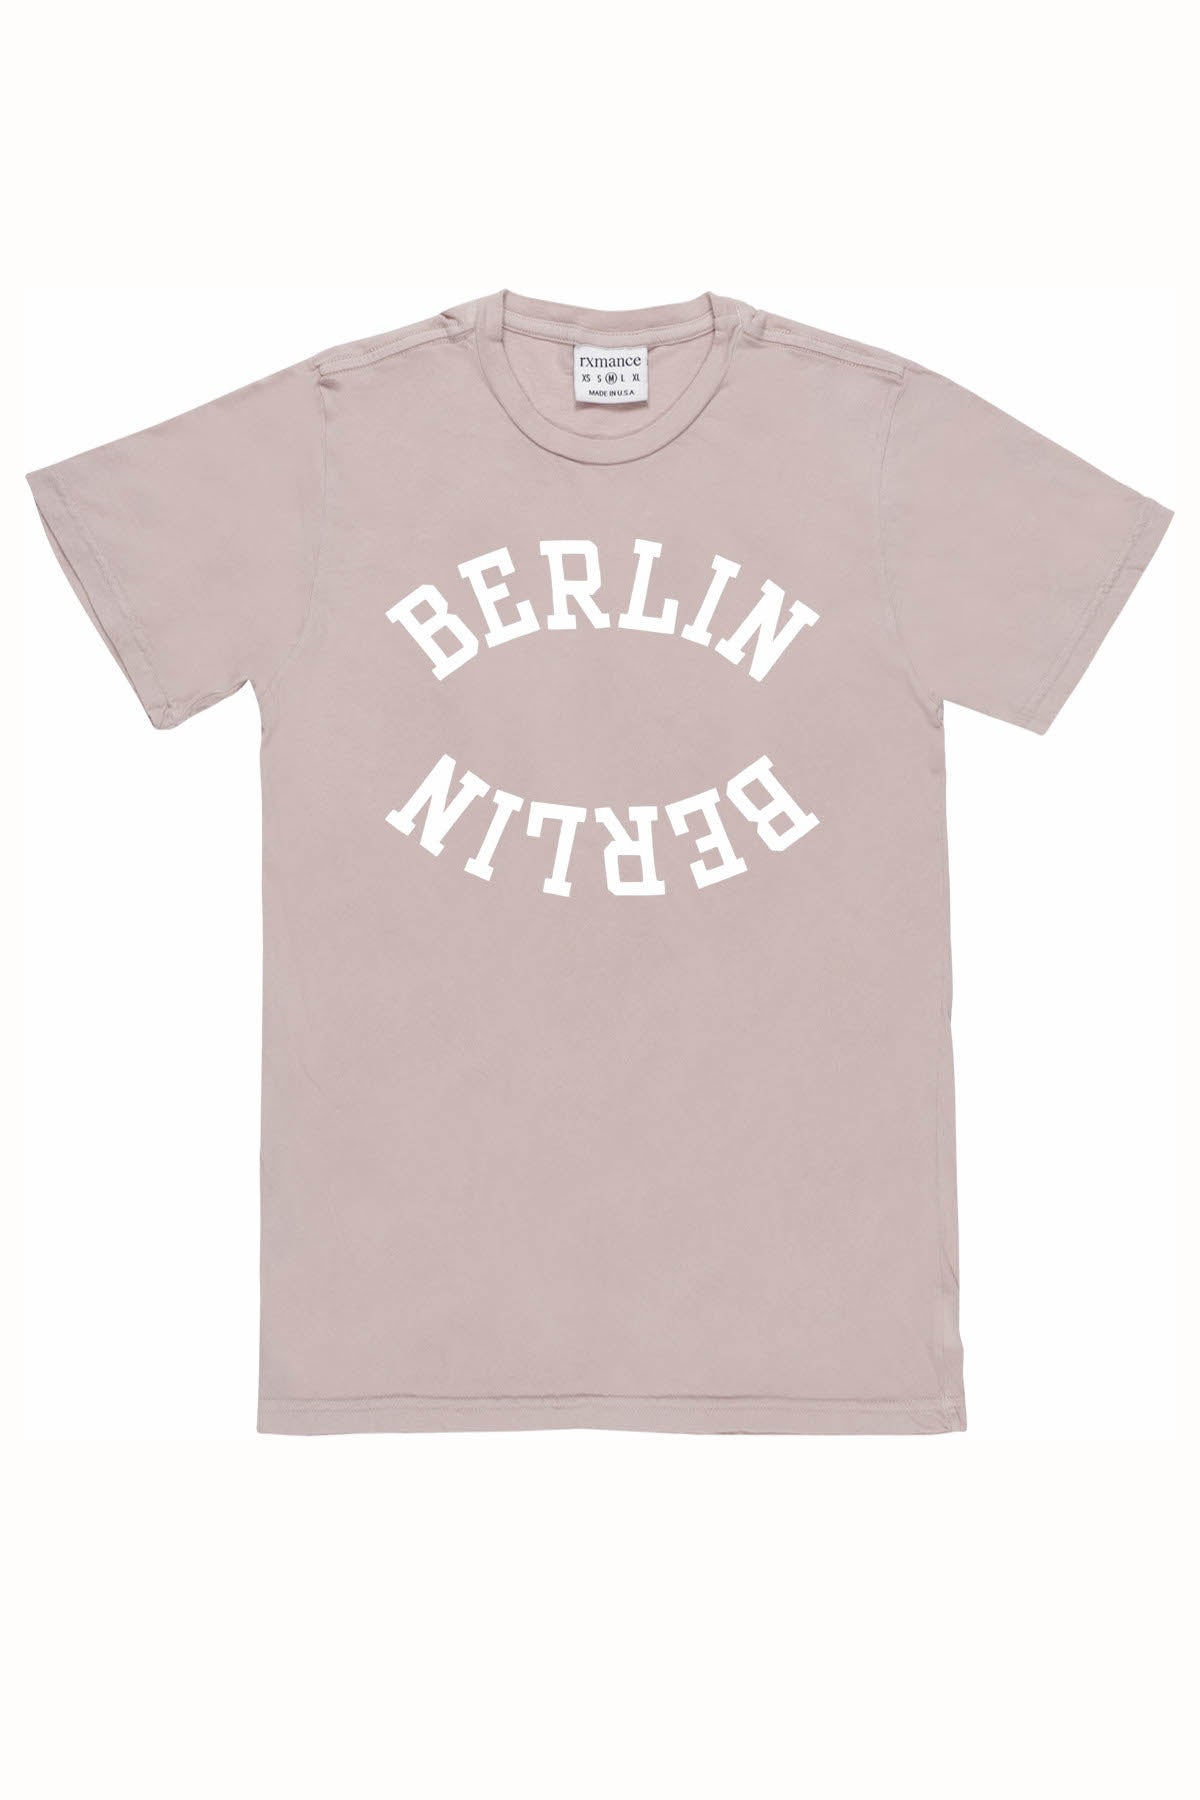 Rxmance Unisex Light Rose 'Berlin' Tee